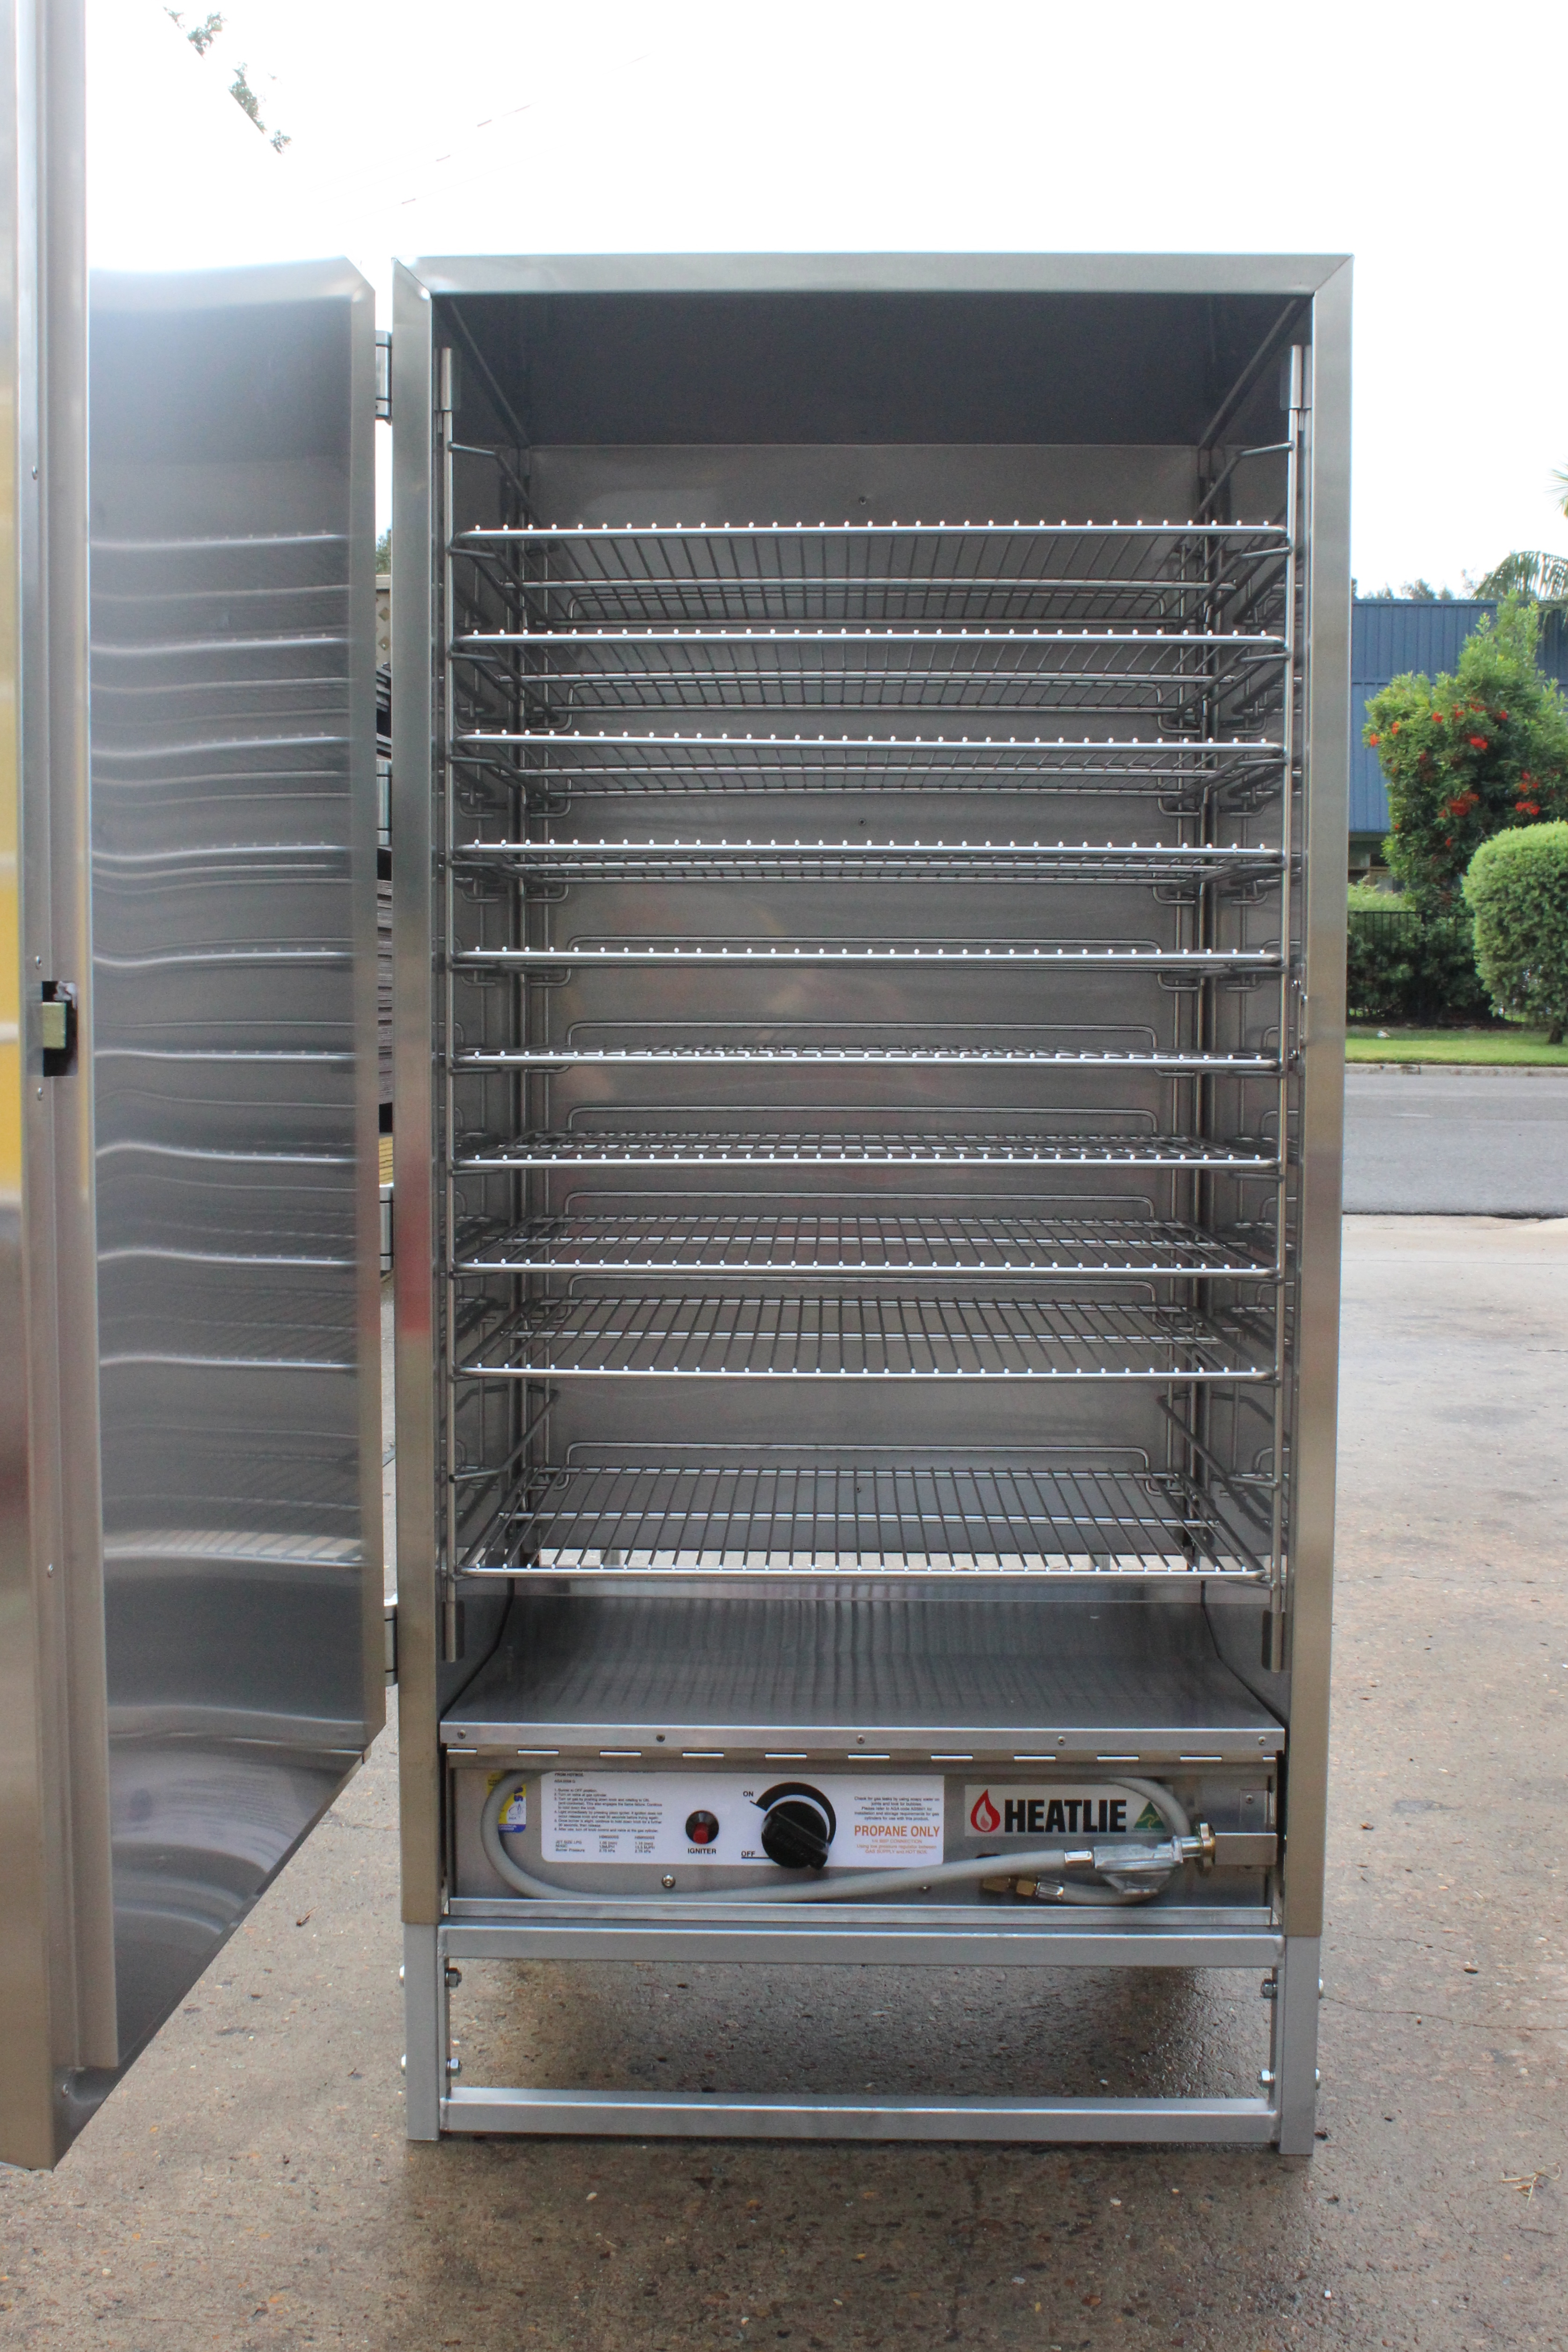 Heatlie HotBox S/Steel Warmer, inc 10 racks